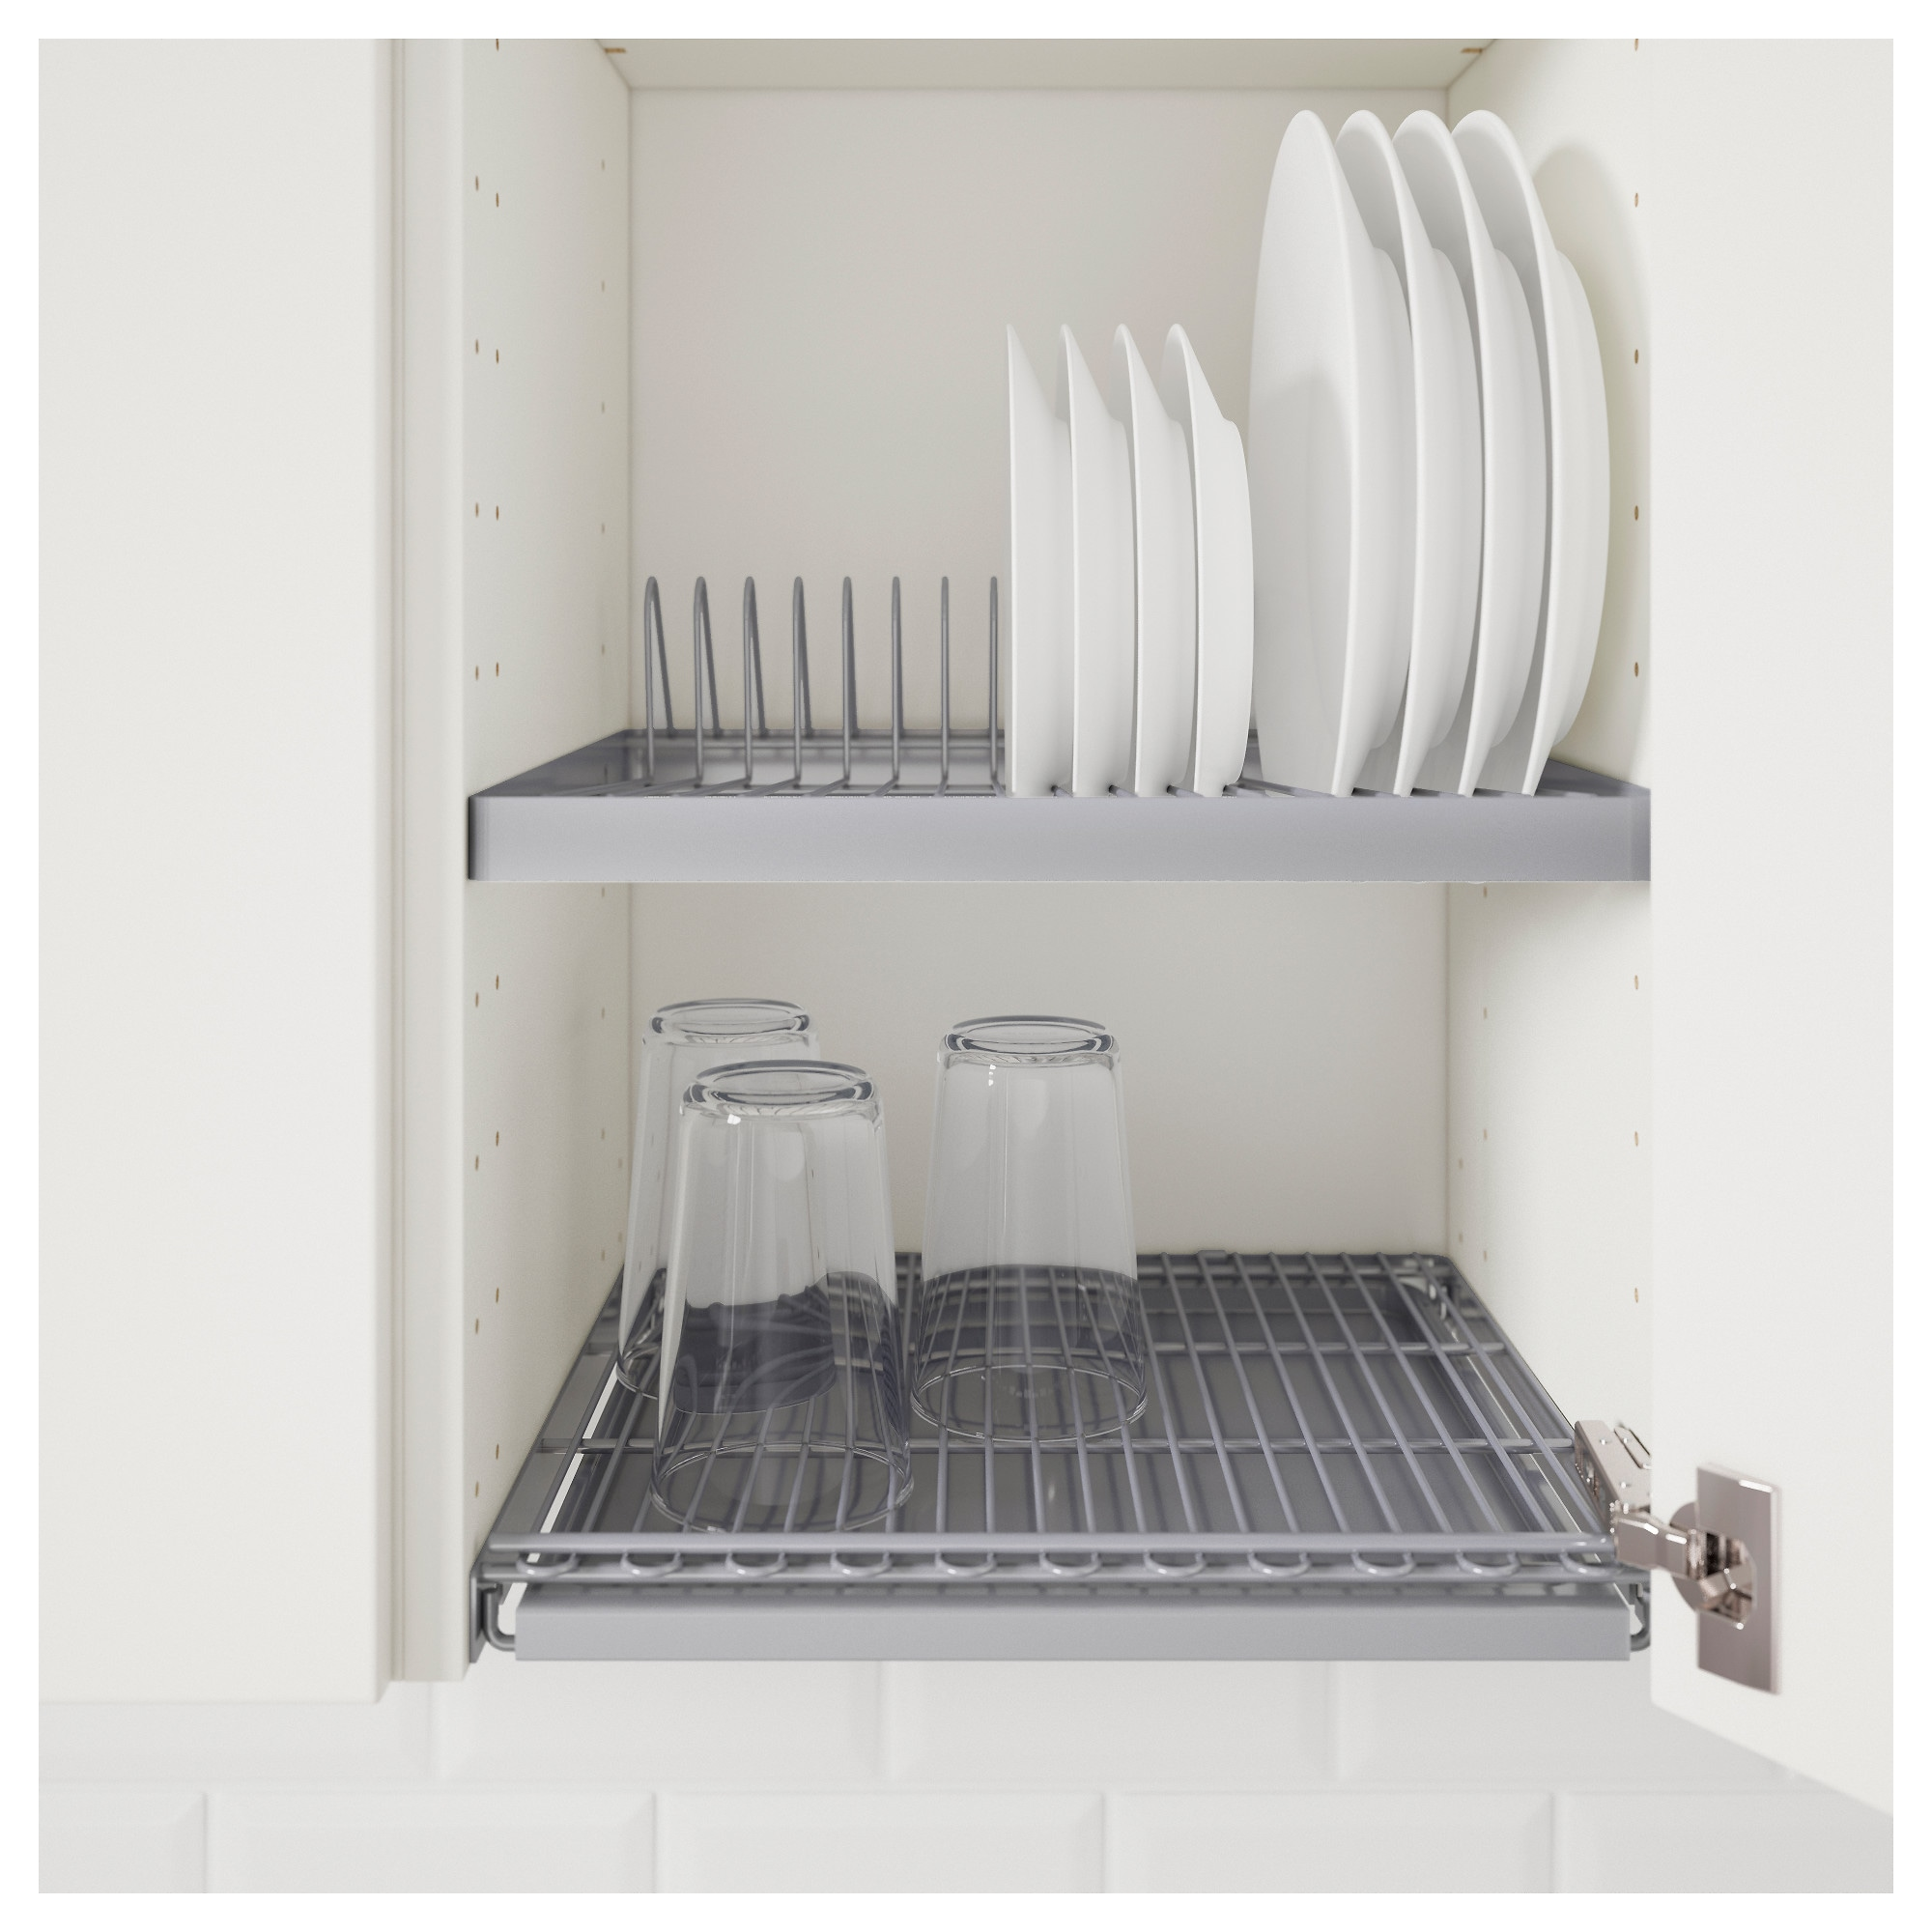 UTRUSTA Dish Drainer For Wall Cabinet   40x35 Cm   IKEA